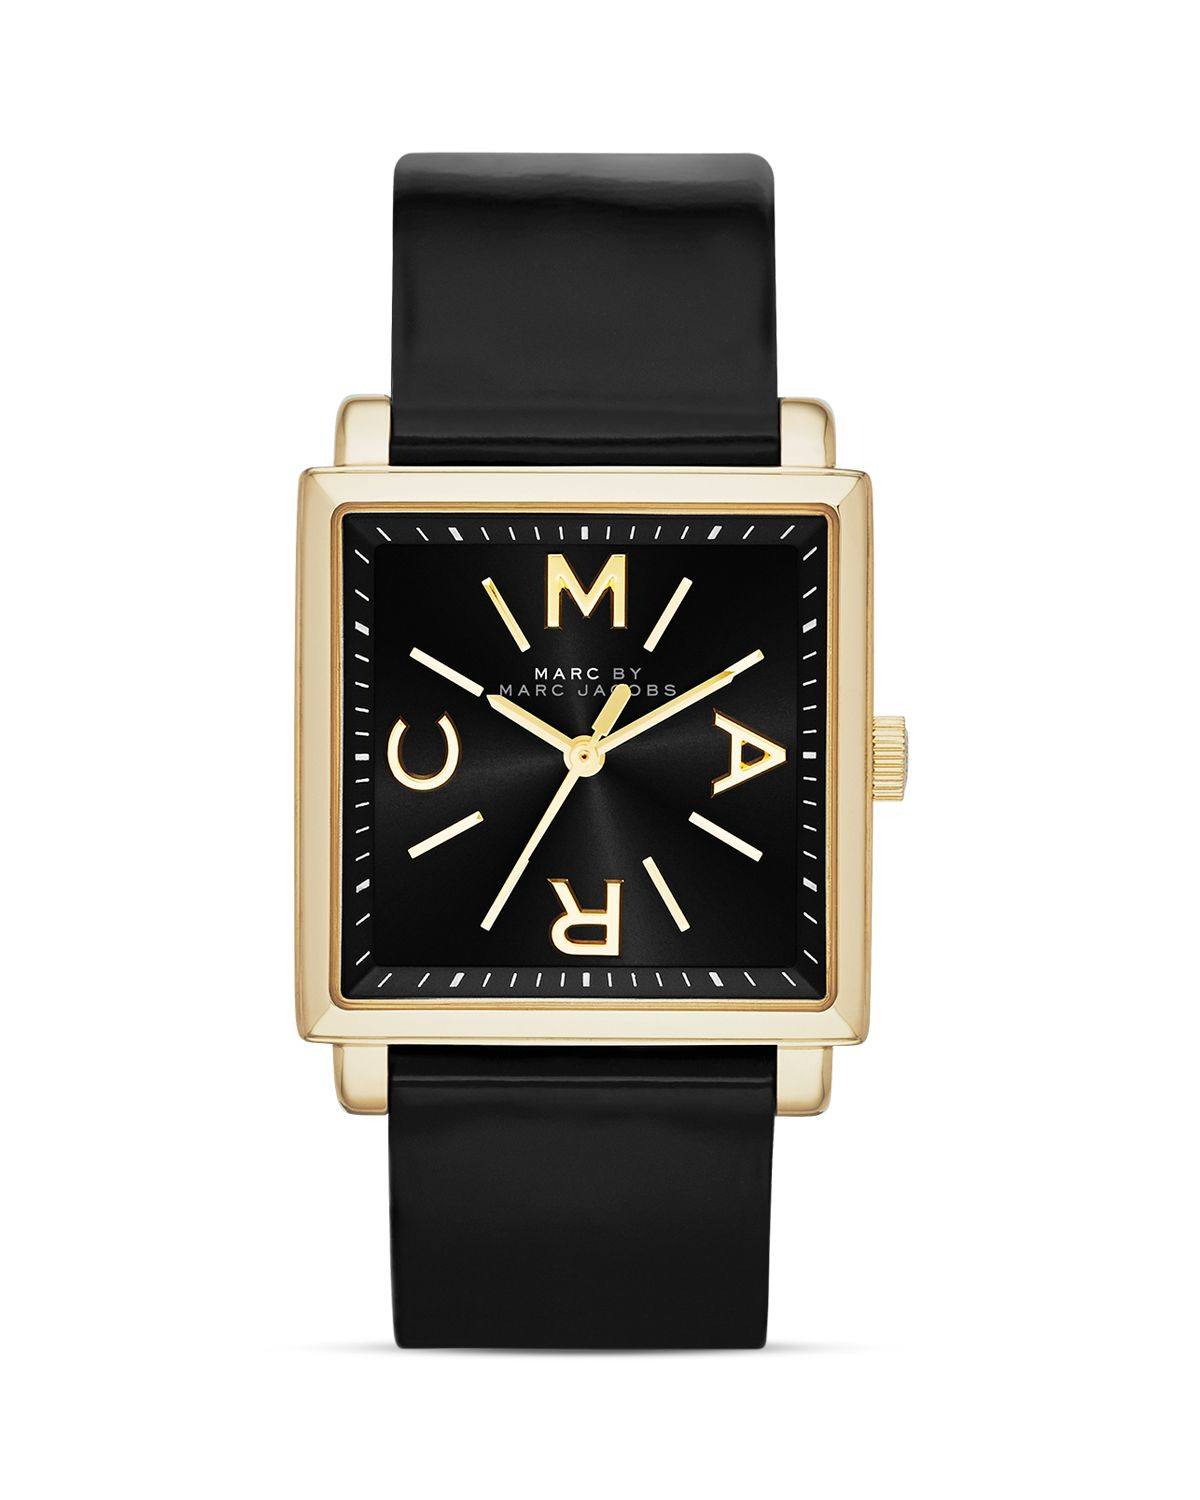 MARC BY MARC JACOBS Truman Strap Watch, 30mm | Bloomingdale's